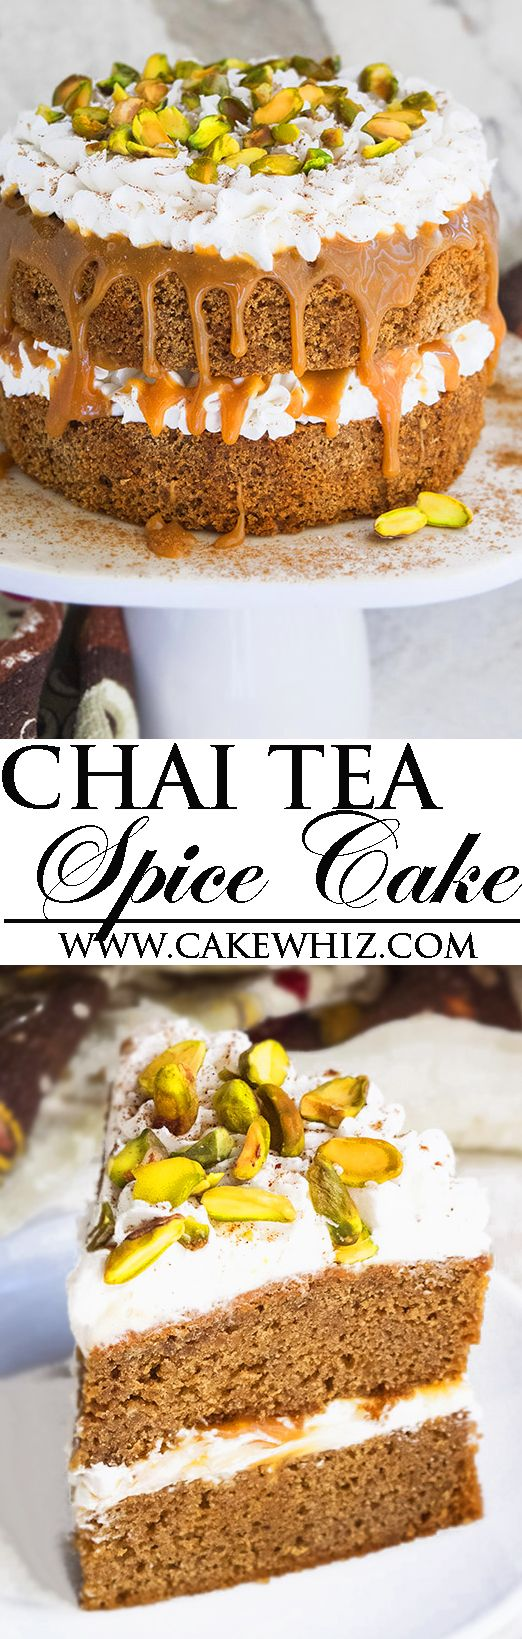 This easy CHAI TEA SPICE CAKE with buttercream frosting, caramel sauce and pistachios is the perfect Fall and Thanksgiving dessert. This chai tea latte cake is packed with spices and each bite is so soft and moist! From cakewhiz.com